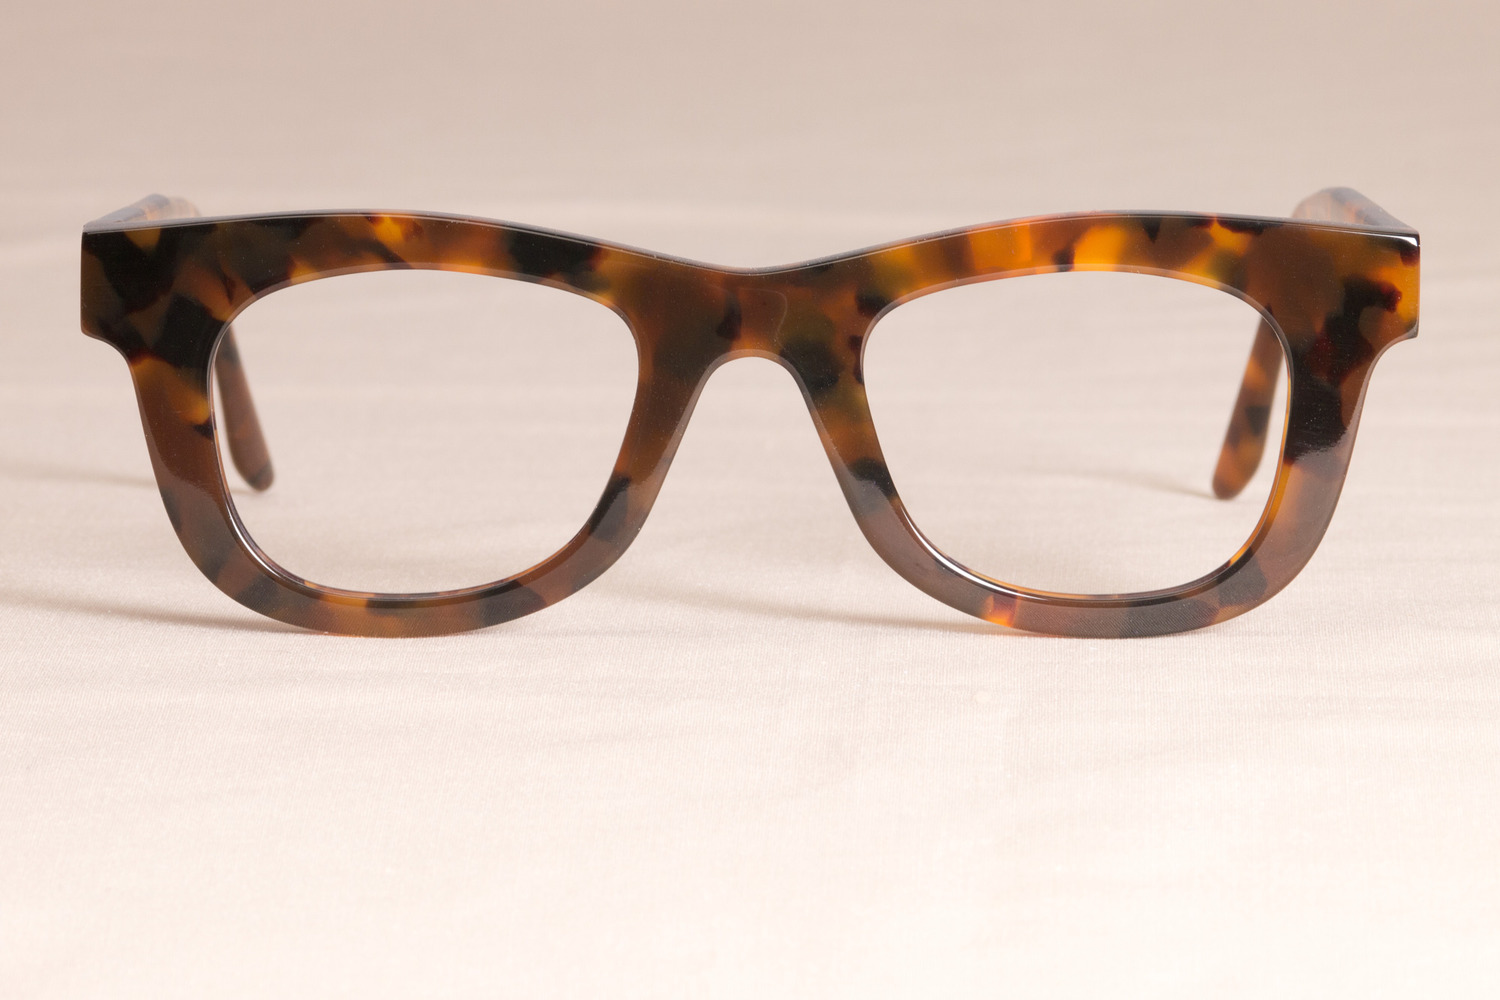 Indivijual-Custom-Glasses-37.jpg